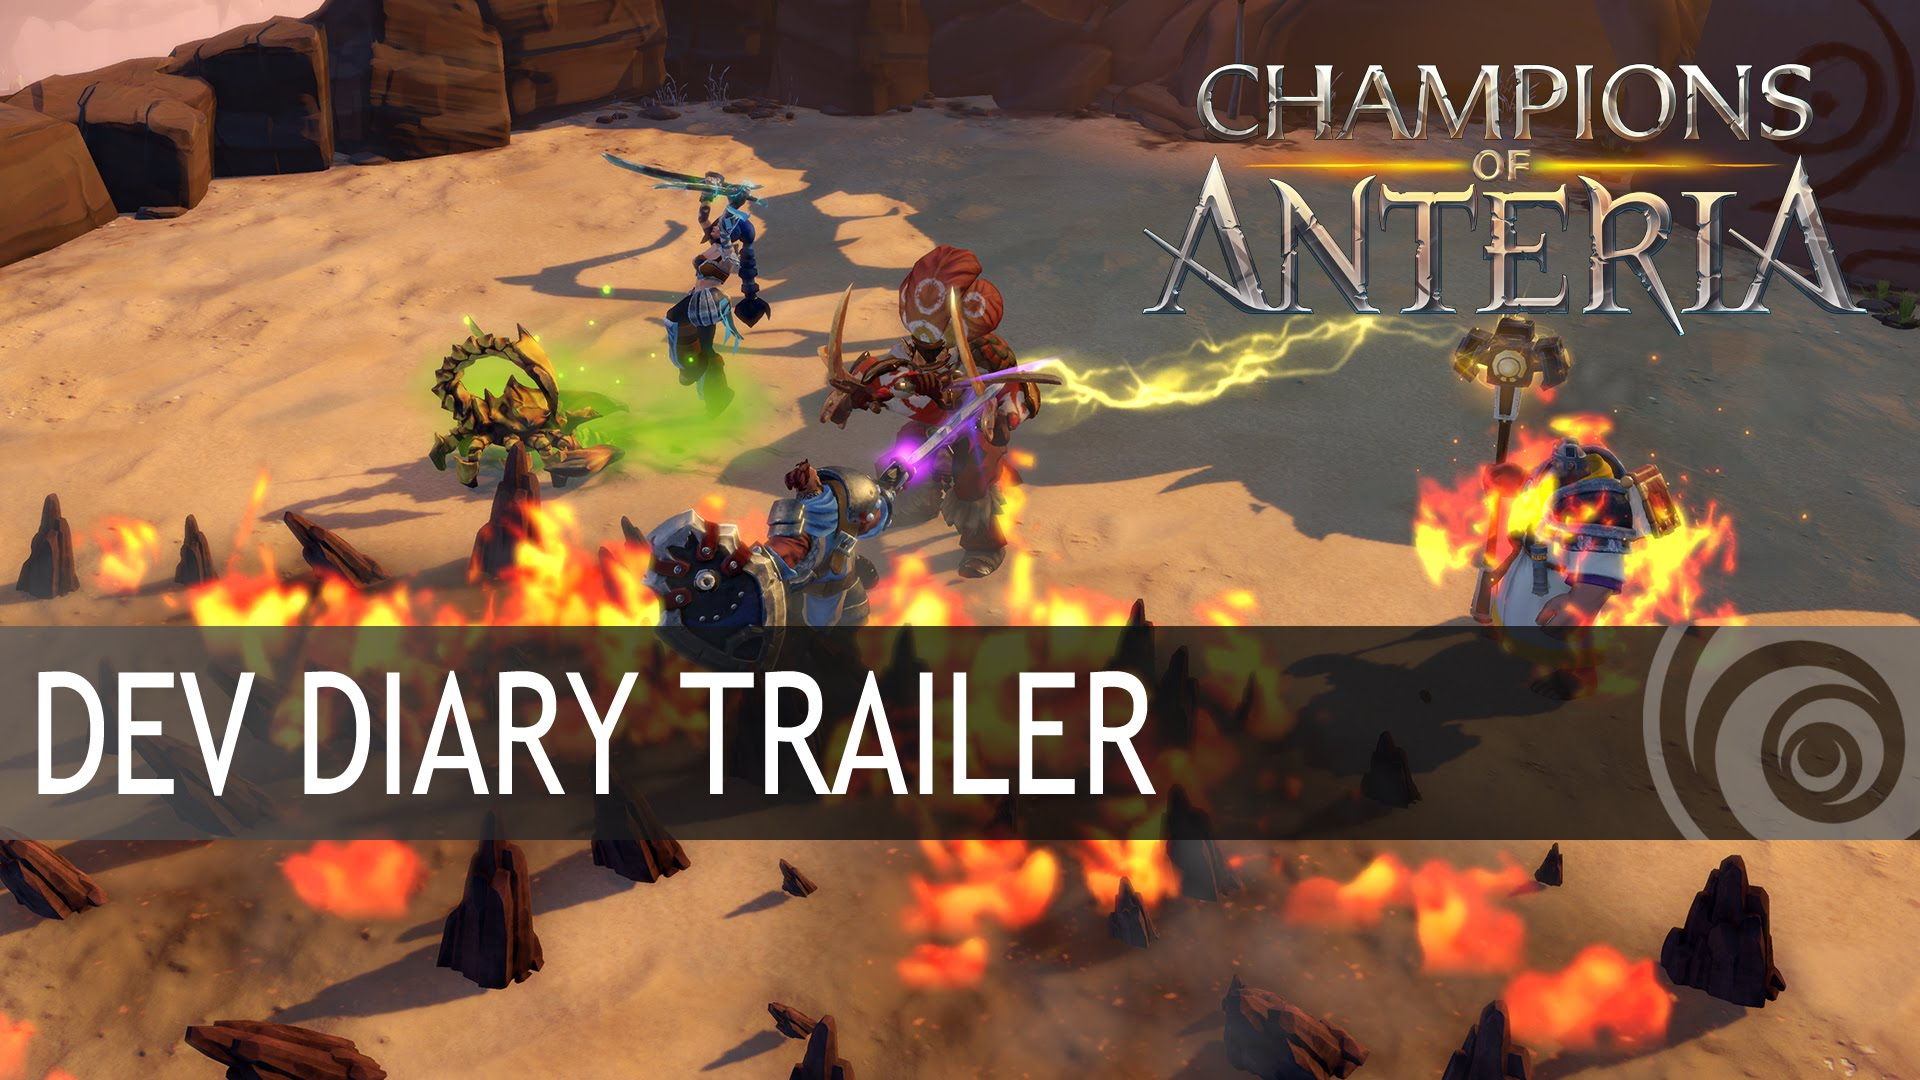 Champions of Anteria: Dev Diary Trailer.